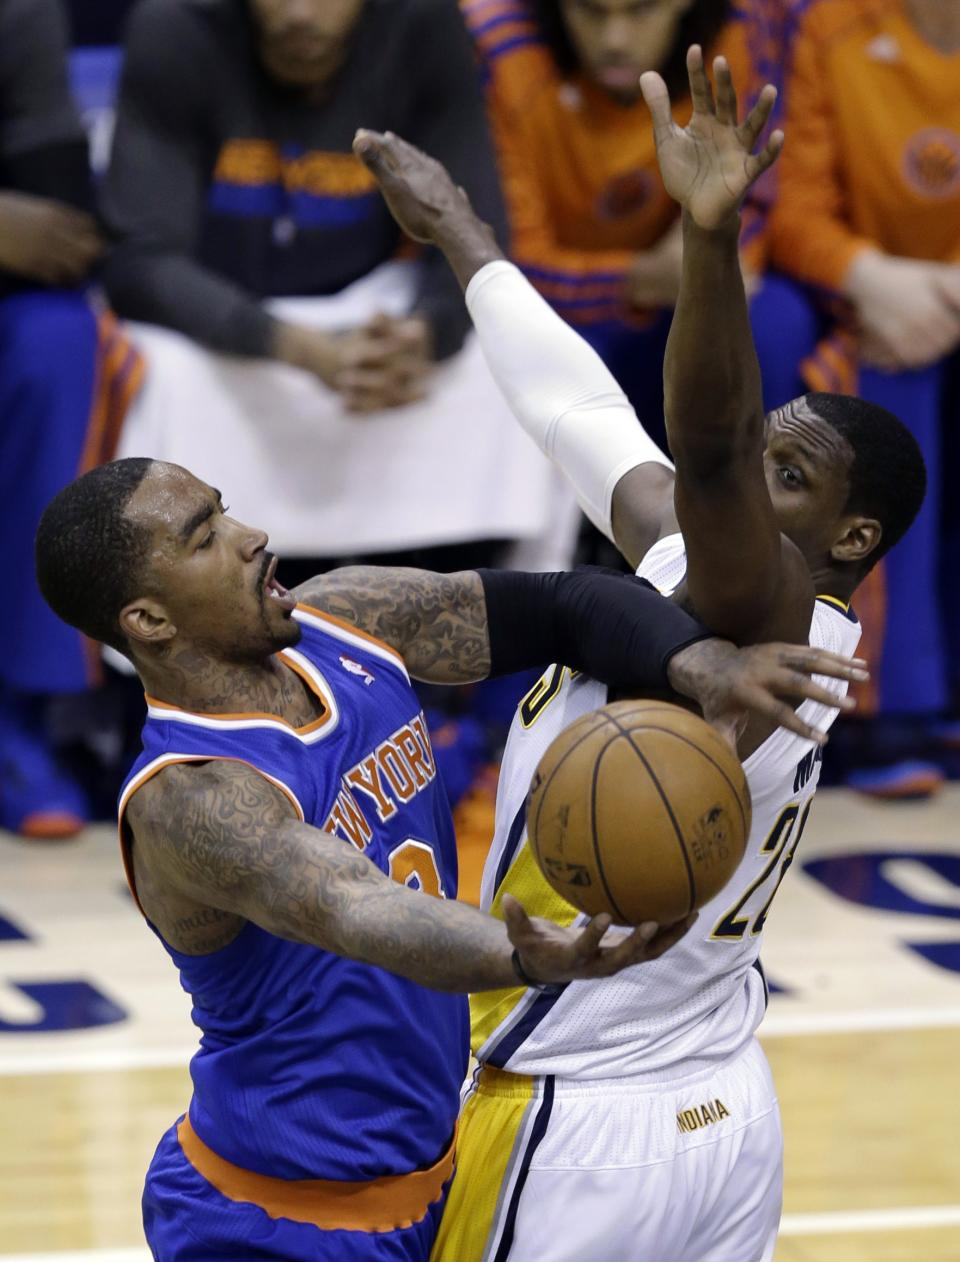 New York Knicks guard J.R. Smith, left, attempts a shot against Indiana Pacers center Ian Mahinmi during the first half of Game 4 of the Eastern Conference semifinal NBA basketball playoff series, in Indianapolis on Tuesday, May 14, 2013. Smith was called for an offensive foul. (AP Photo/Michael Conroy)